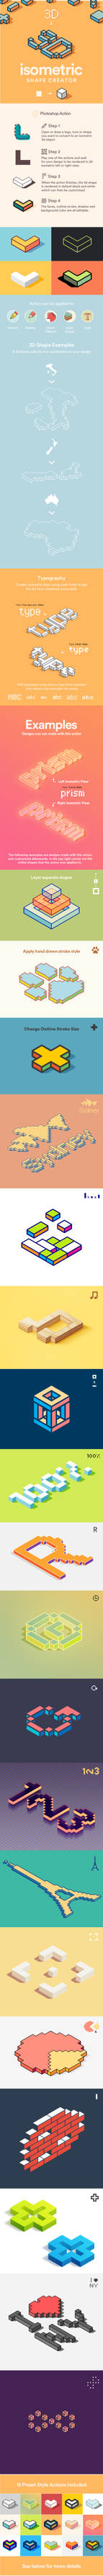 Isometric Shape Creator Preview Image